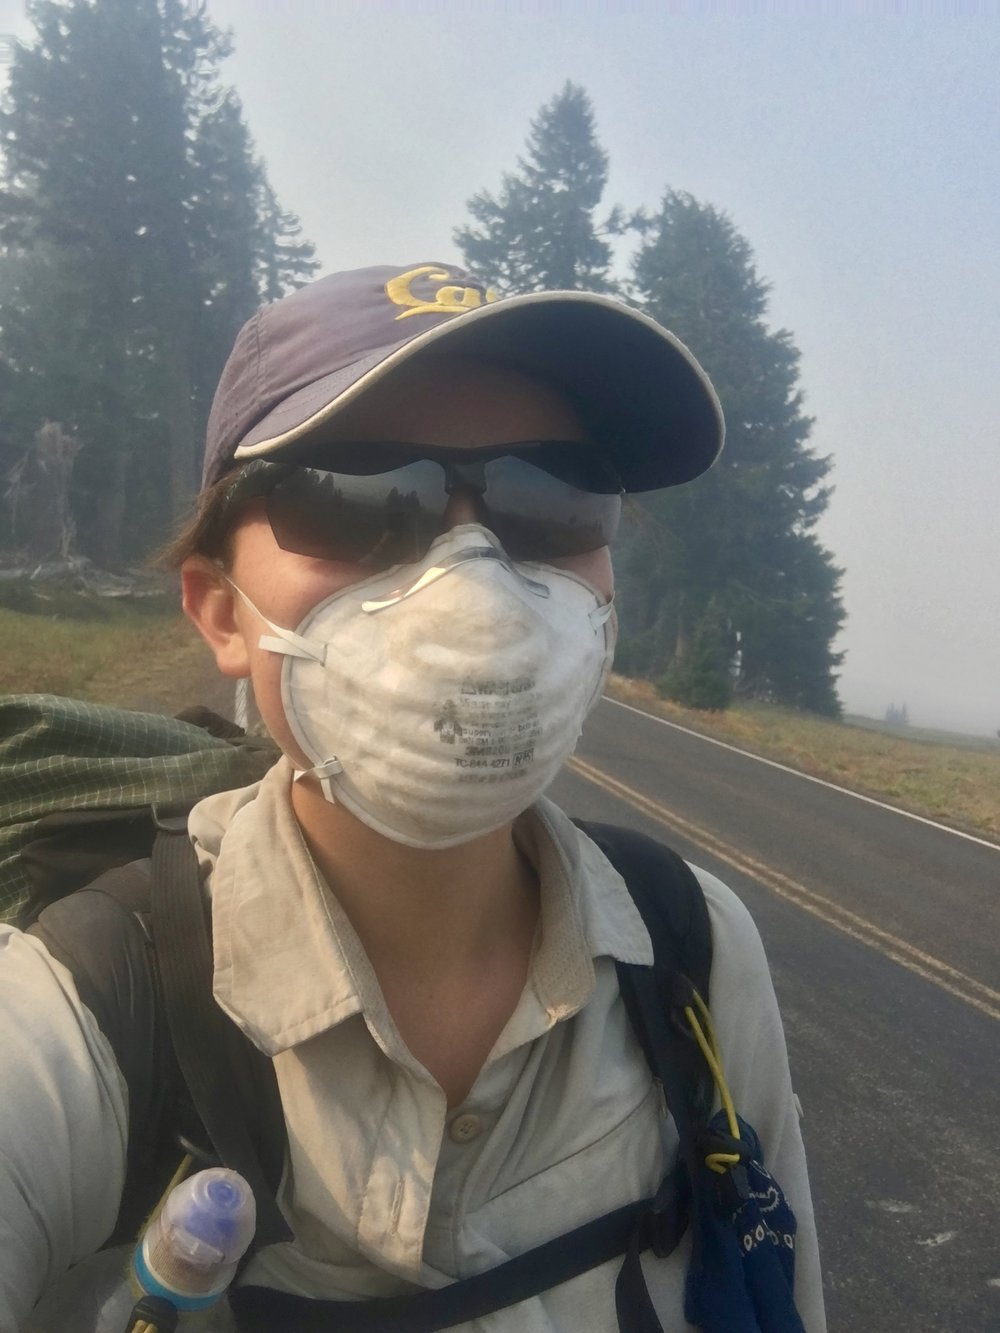 Road walking around Crater Lake with a smoke mask. We didn't get to see the lake that day because the bowl was completely filled with smoke from nearby wildfires.